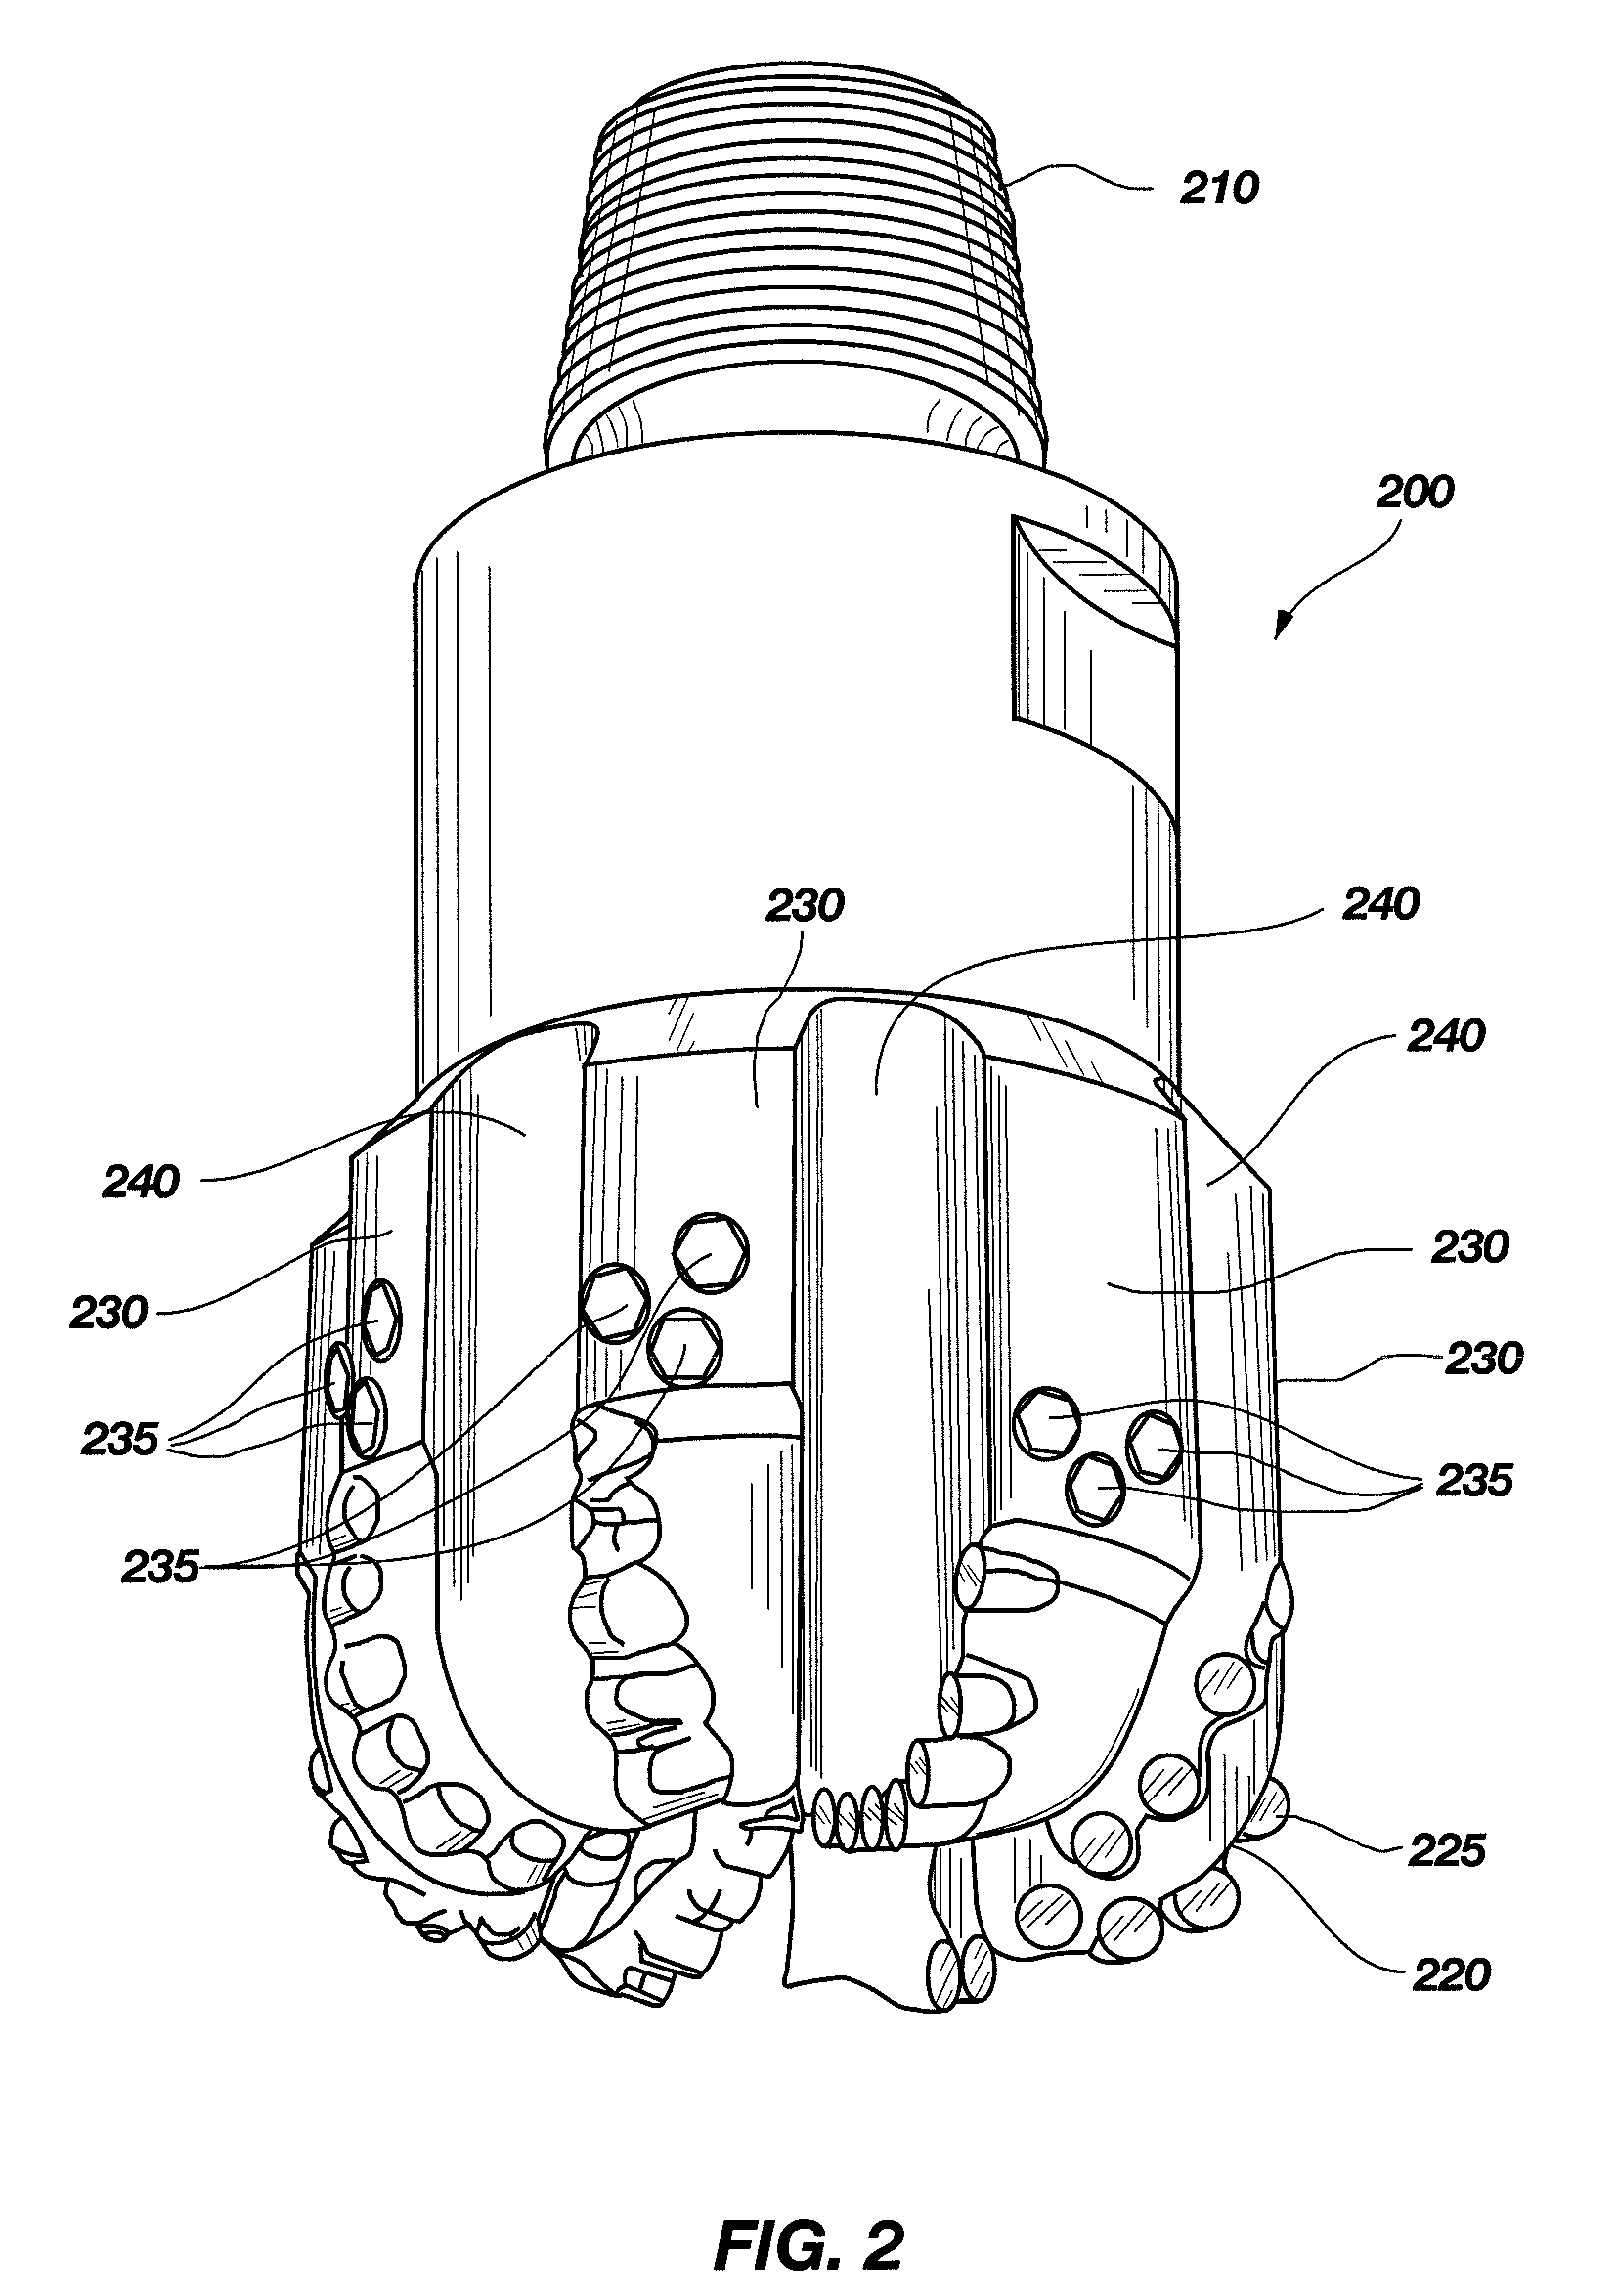 Patent Us8087477 Methods And Apparatuses For Measuring